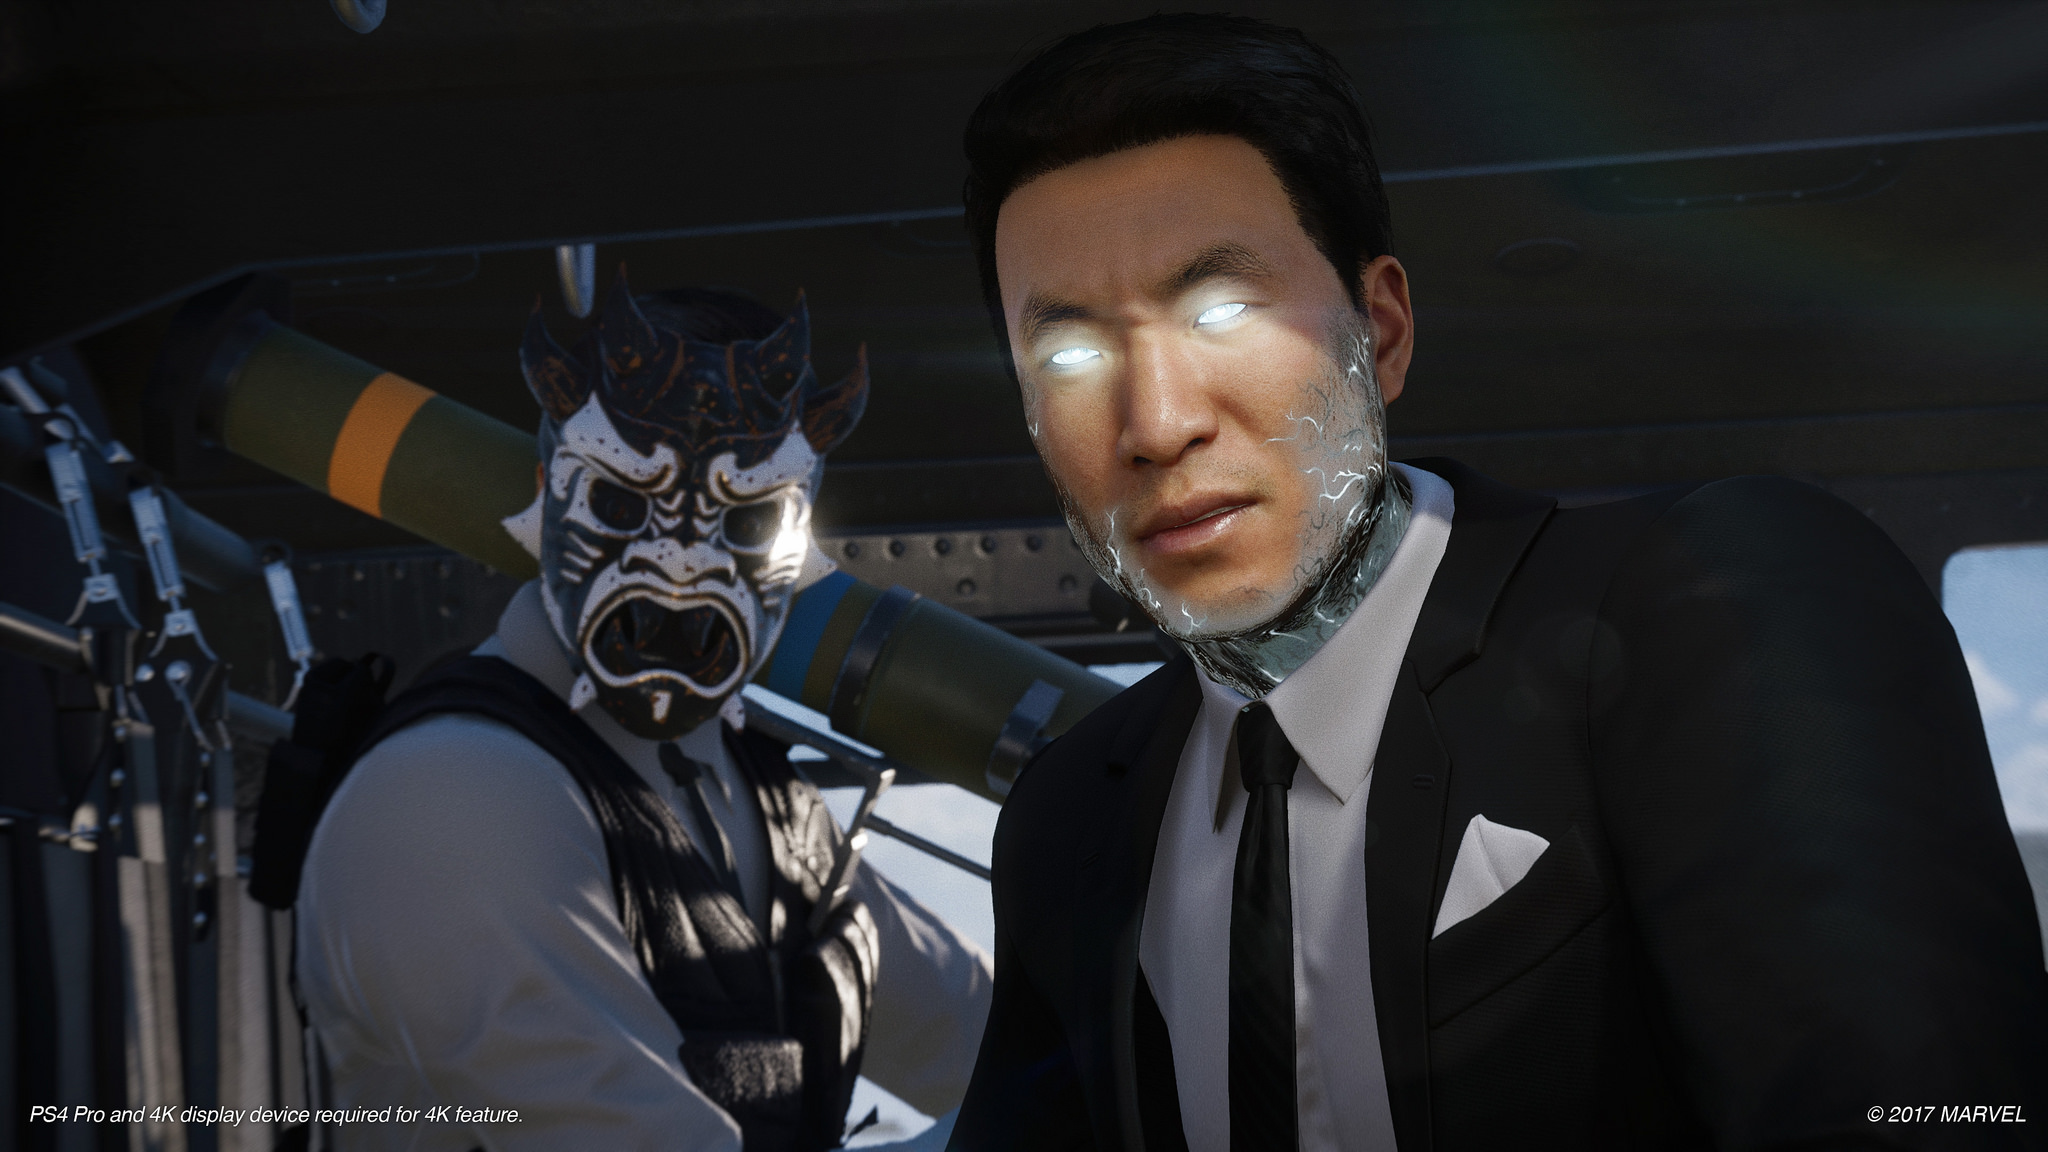 Spider-Man PS4 Supervillain Mister Li